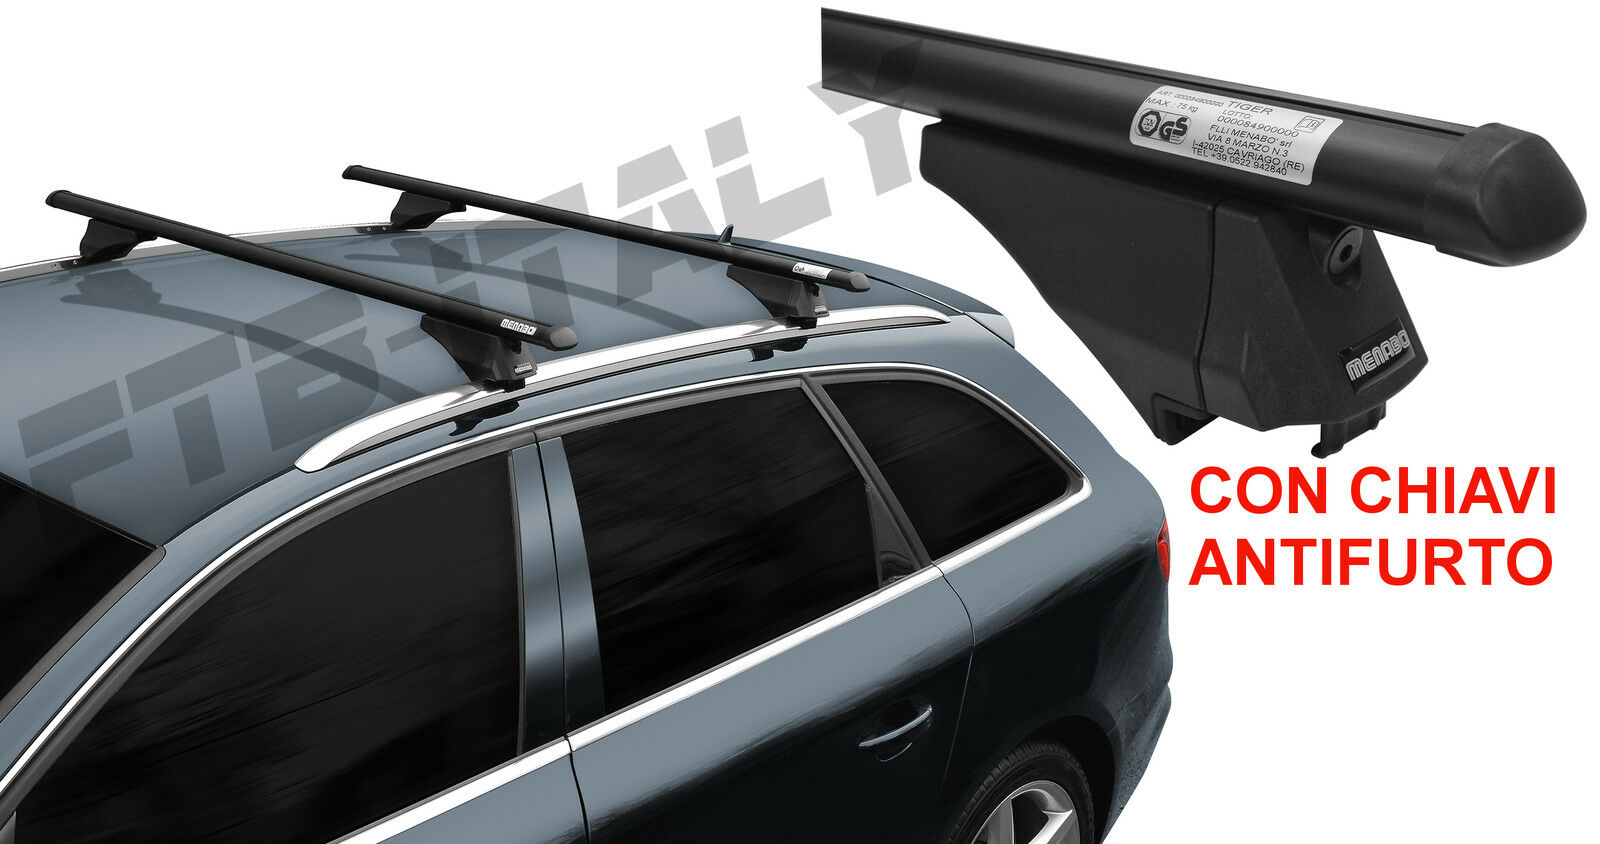 barre portatutto auto opel zafira b dal 2009 al 2012. Black Bedroom Furniture Sets. Home Design Ideas